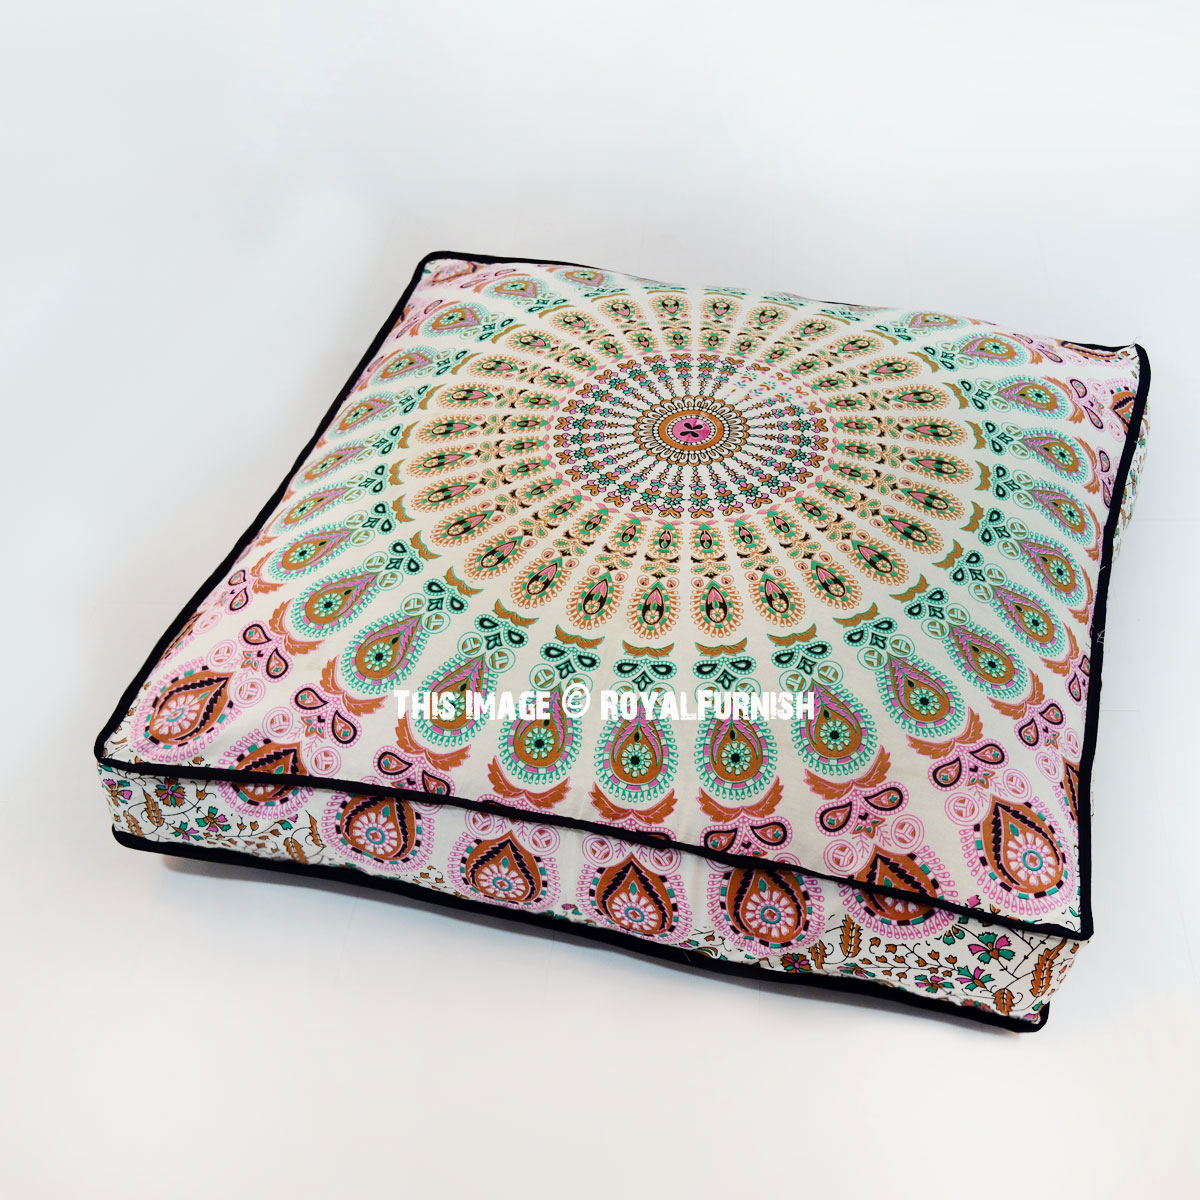 White Peacock Mandala Square Floor Pillow Cover 36x36 Inch